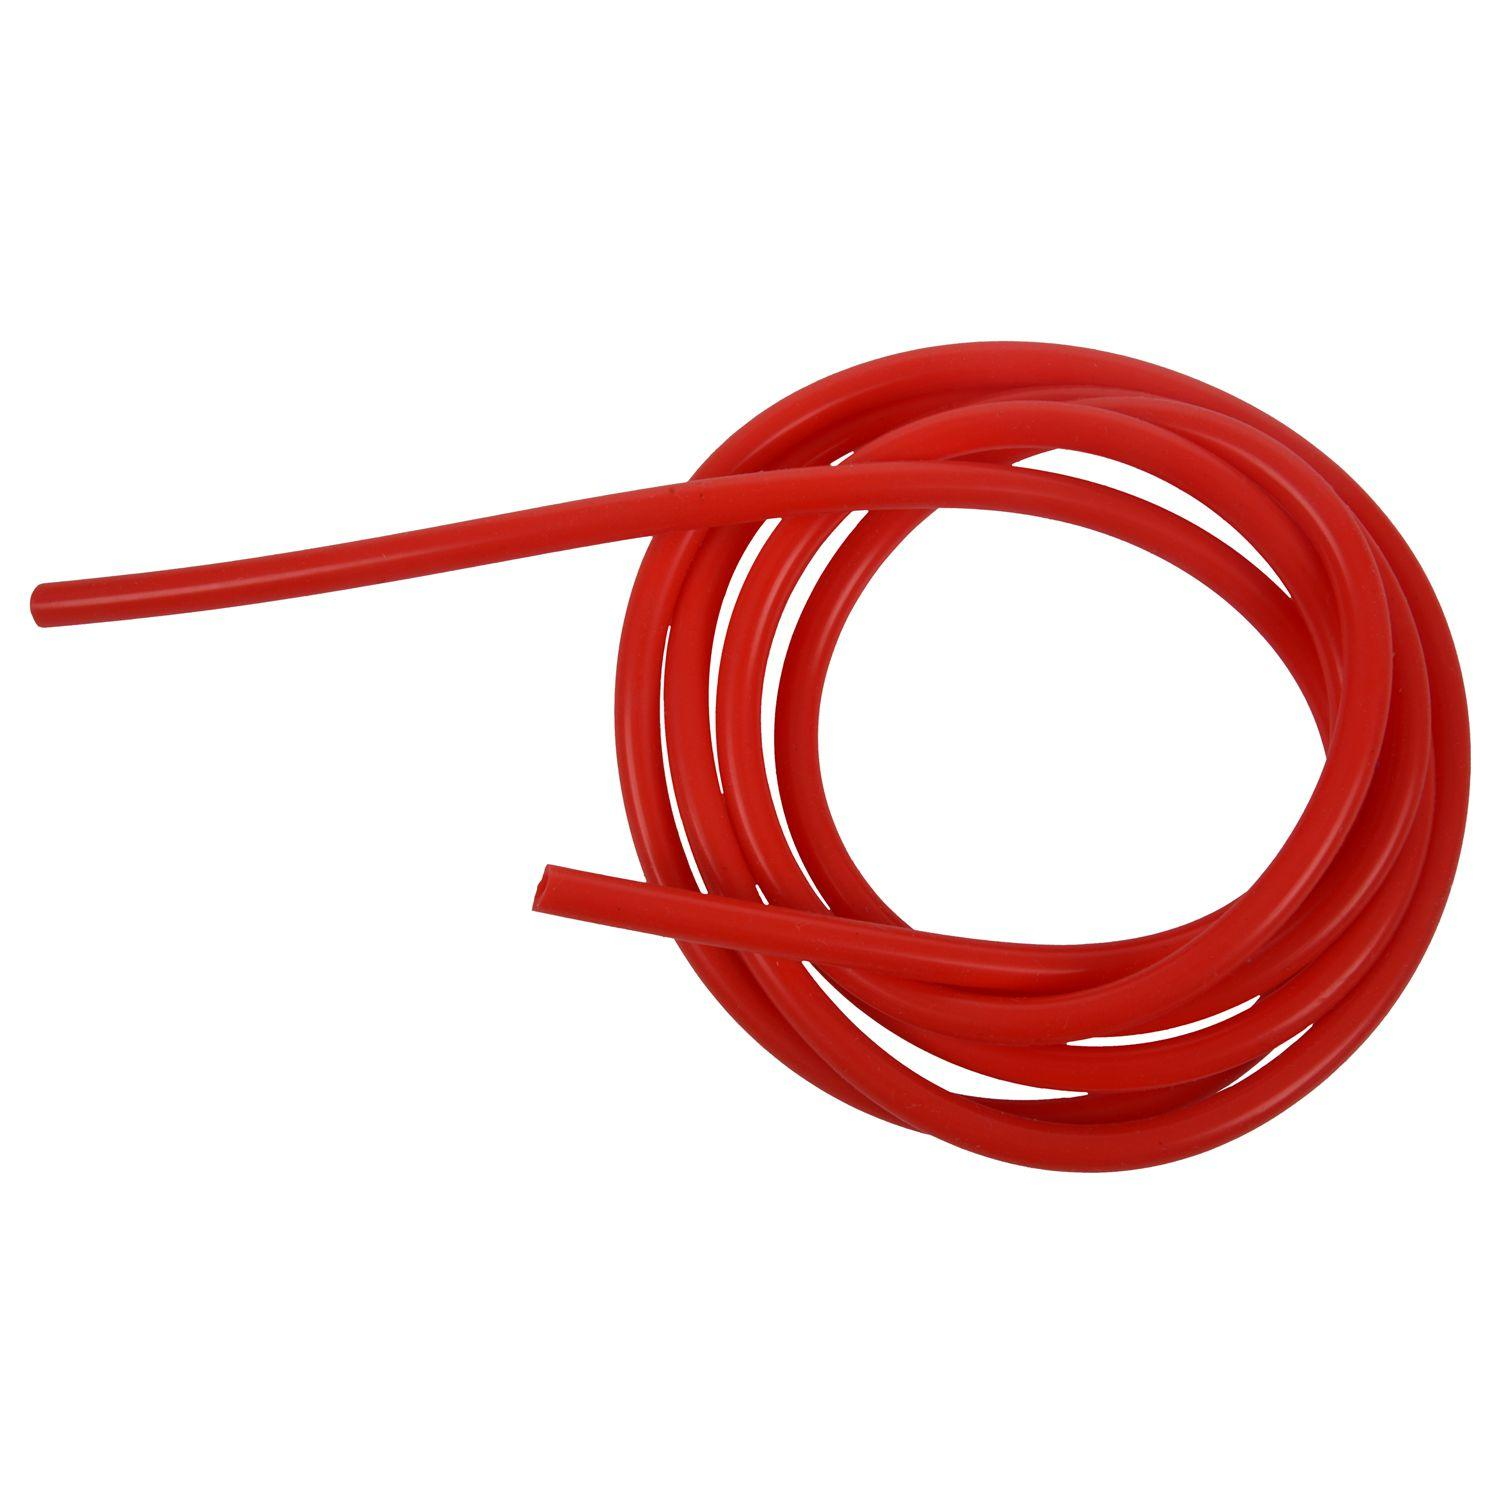 2 Meter Red Silicone Vacuum Tube Hose 4mm ID 7mm OD for Car